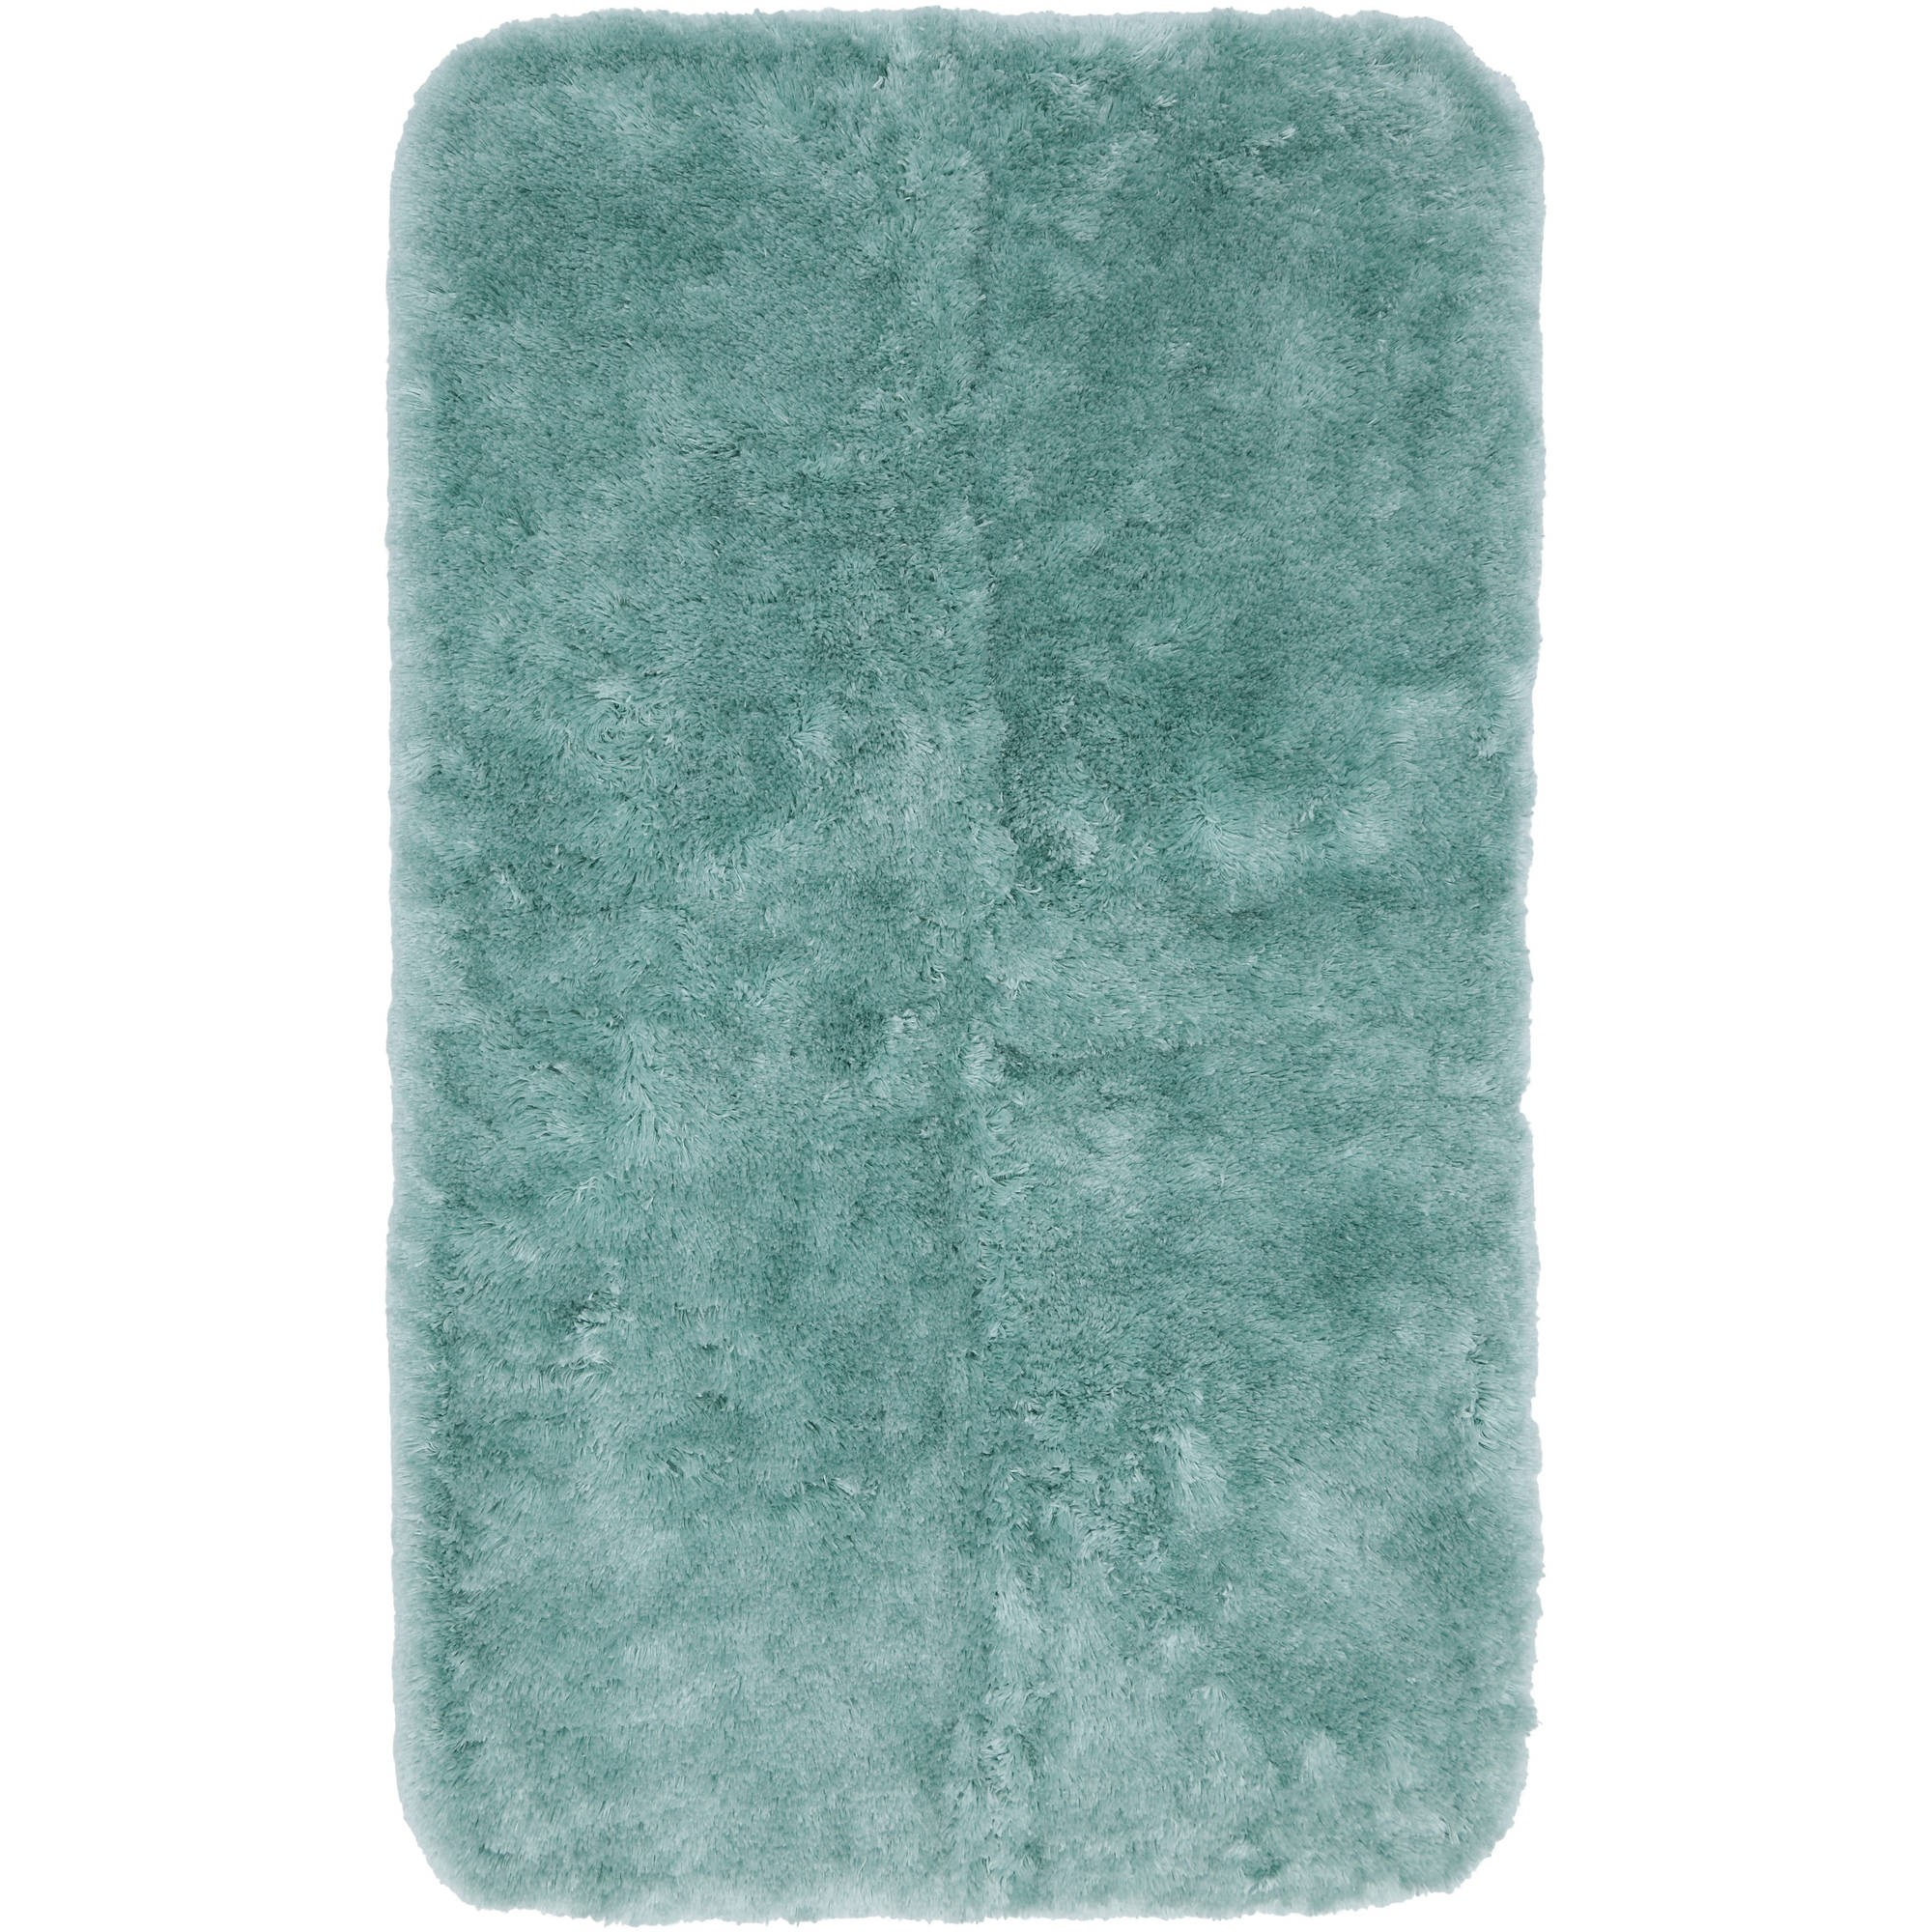 Bathroom Rugs at Walmart Beautiful Better Homes and Gardens Thick and Plush Bath Mat Walmart Gallery